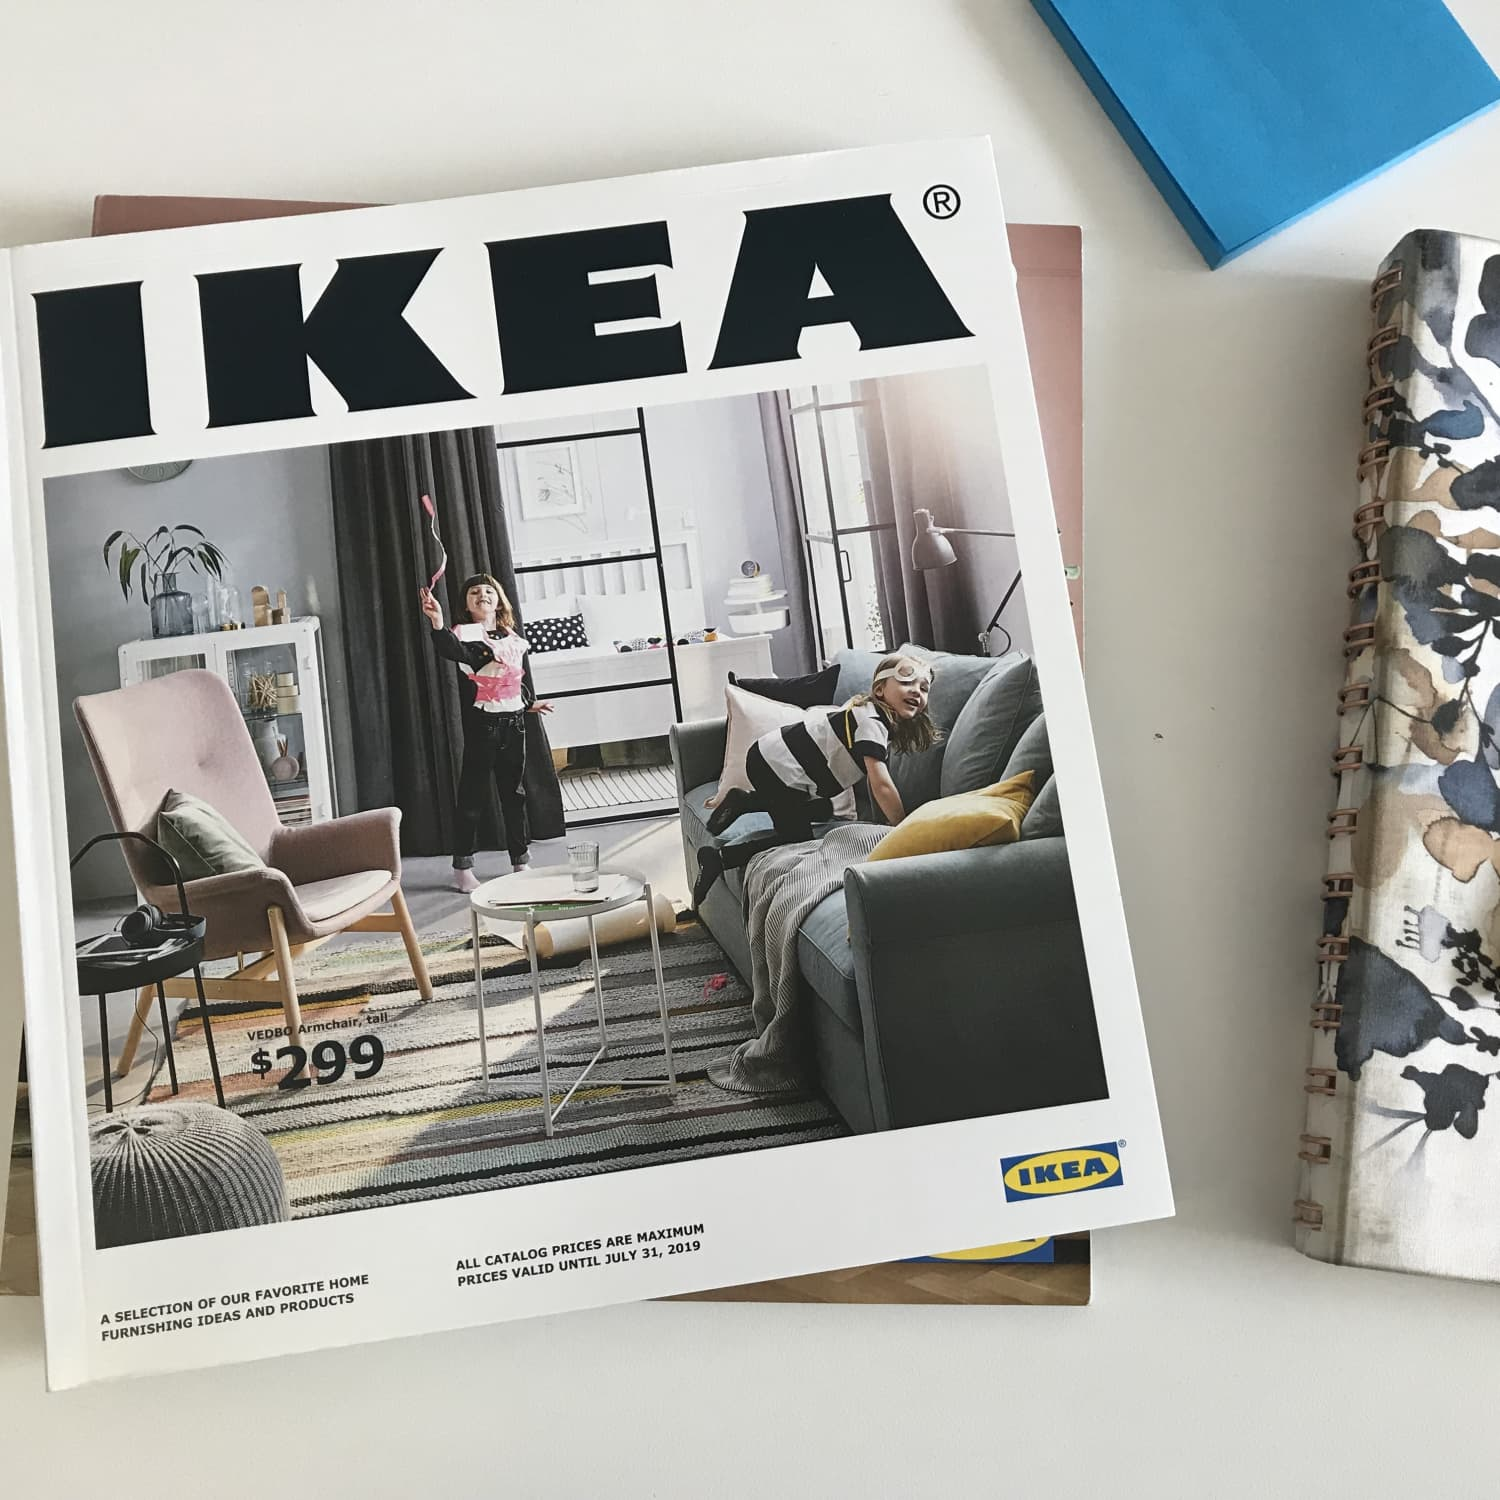 The Best New Kitchen Products From Ikeas 2019 Catalog Kitchn